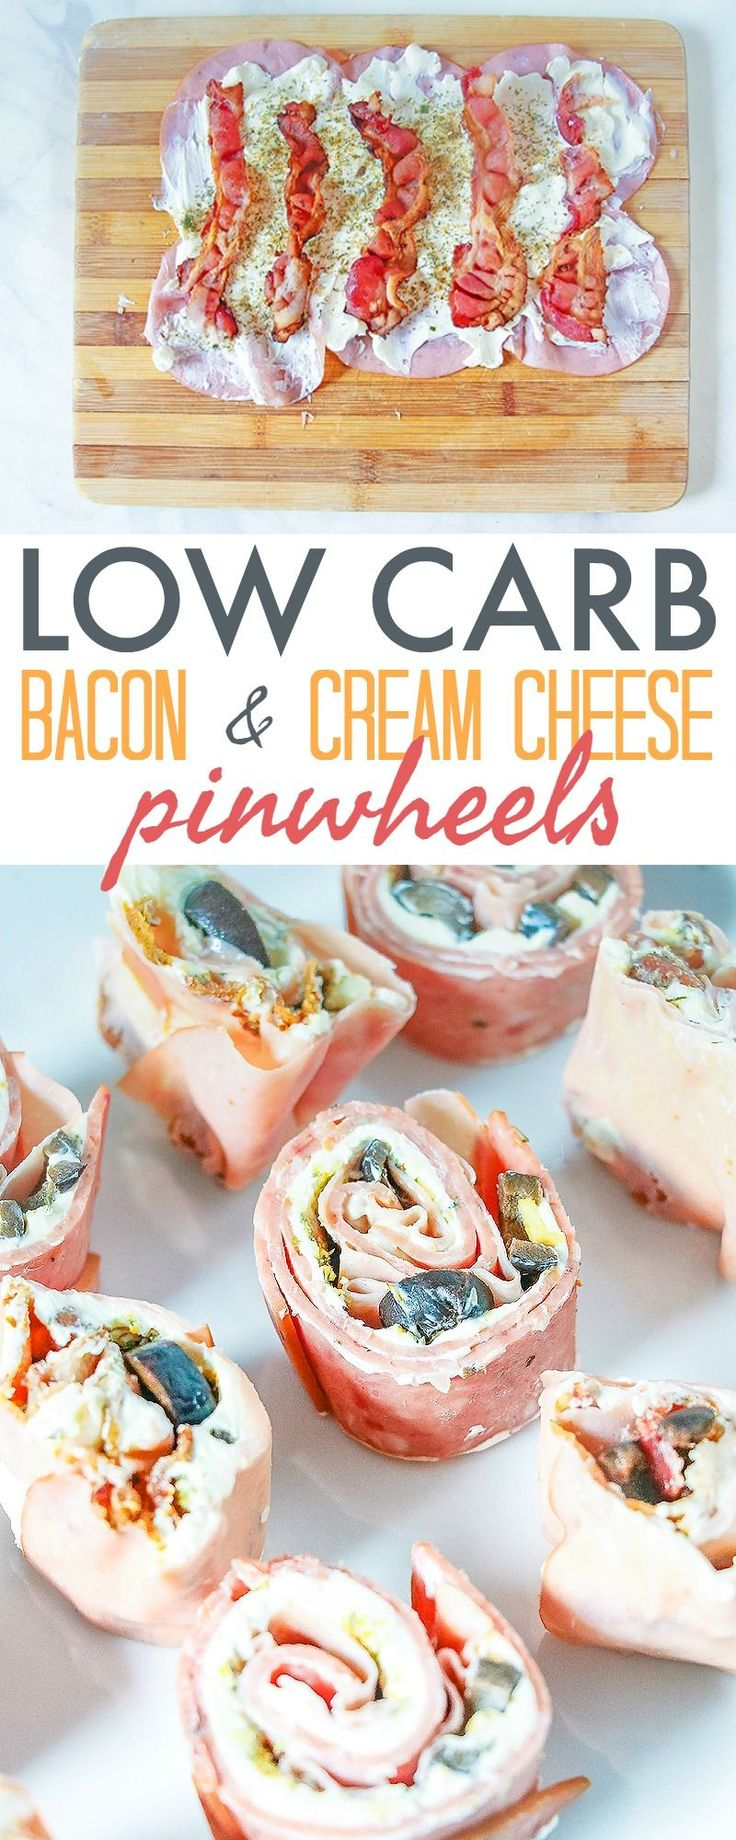 Low Carb Pinwheels with Bacon and Cream Cheese - this quick and easy keto recipe is versatile and is great as an appetizer or as a snack. https://www.730sagestreet.com/low-carb-pinwheels/